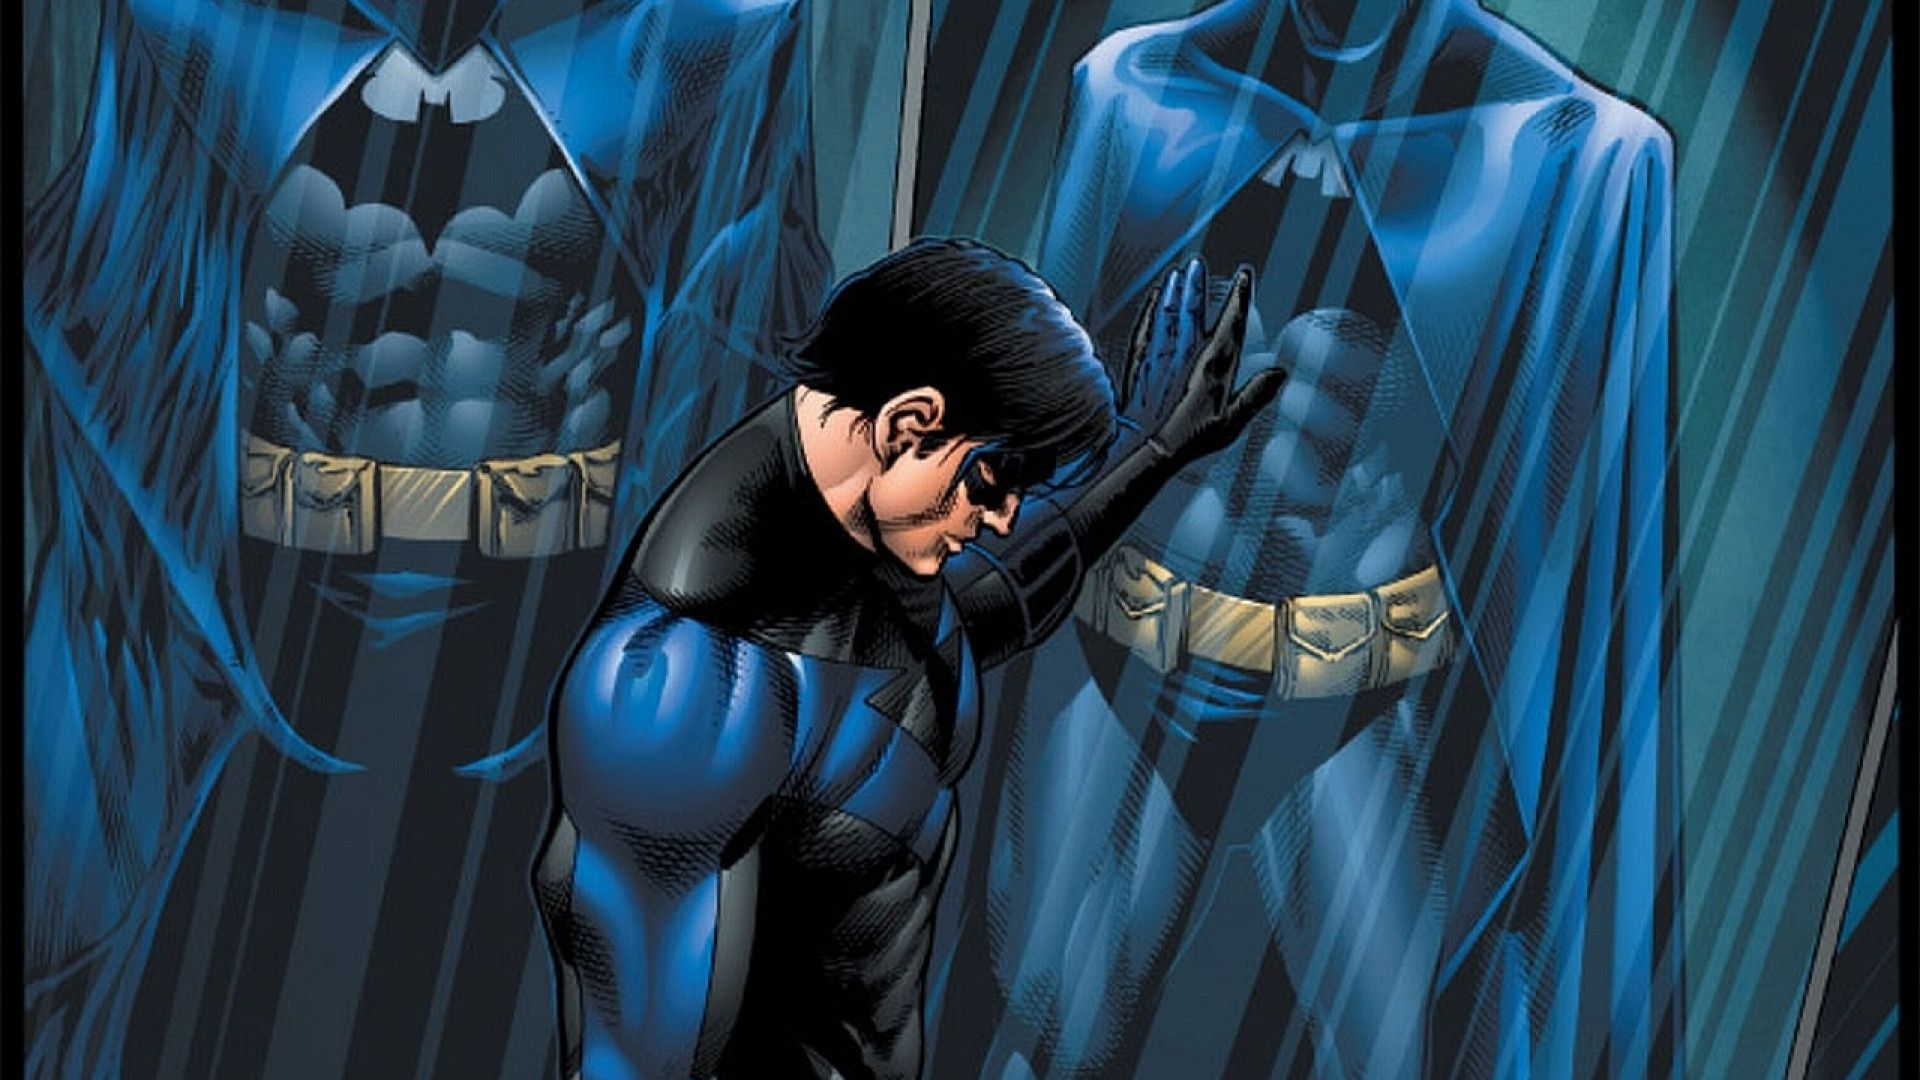 Batman Nightwing Wallpaper   1920x1080